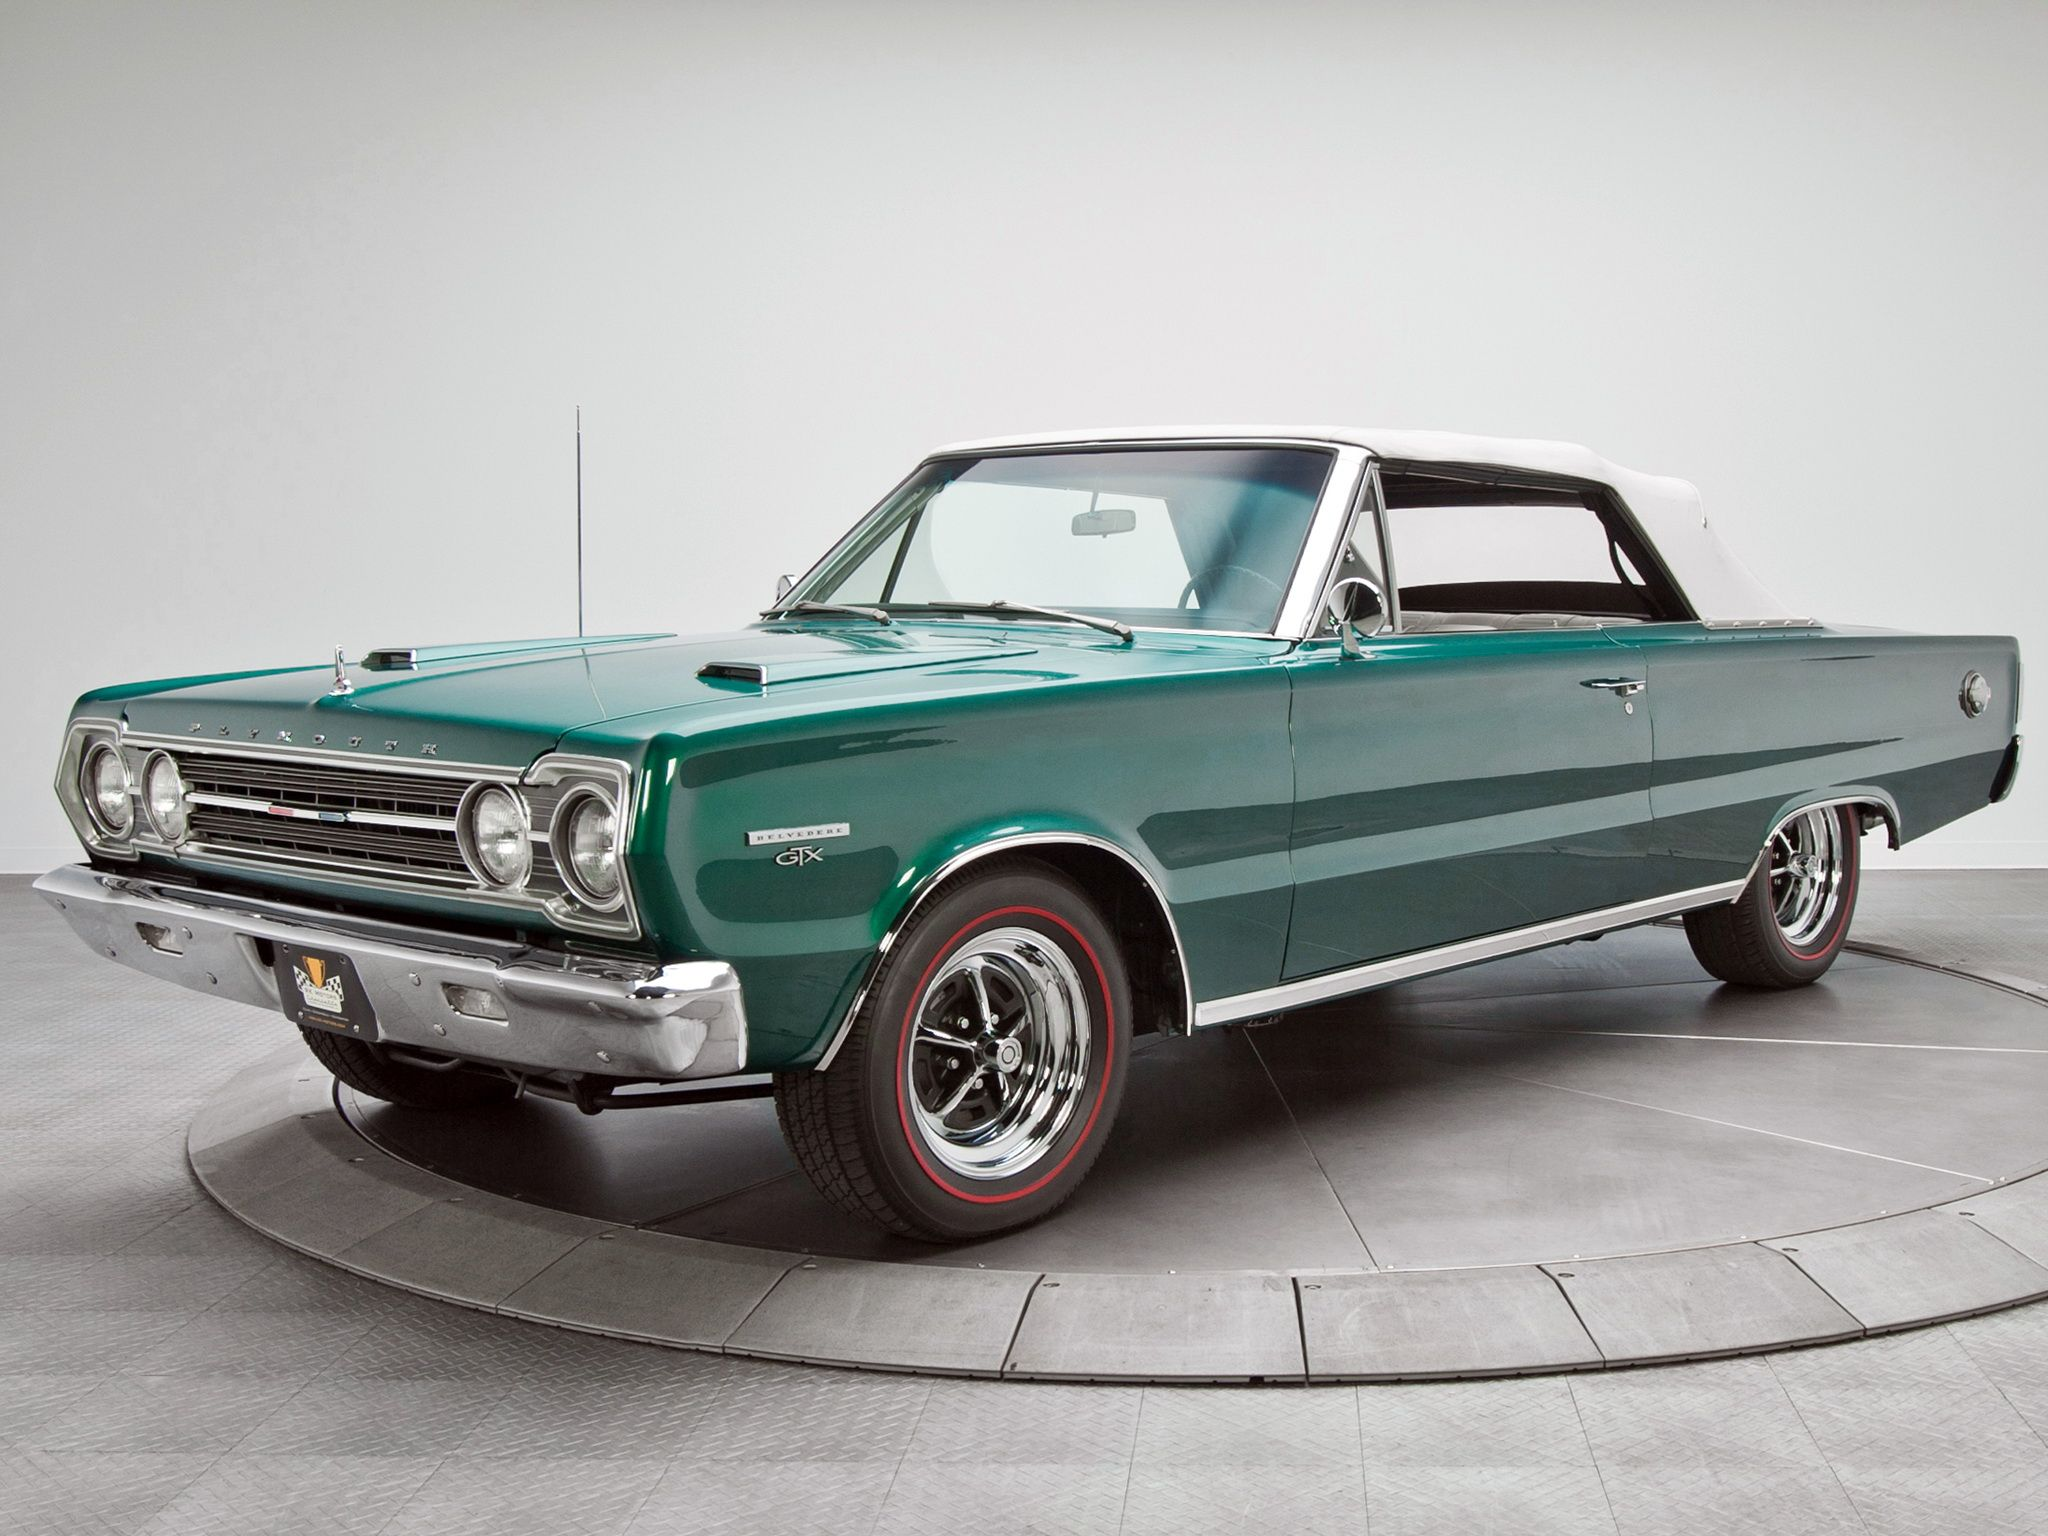 1967 Plymouth Belvedere Gtx 440 Convertible Rs27 Muscle Clic Wallpaper Background